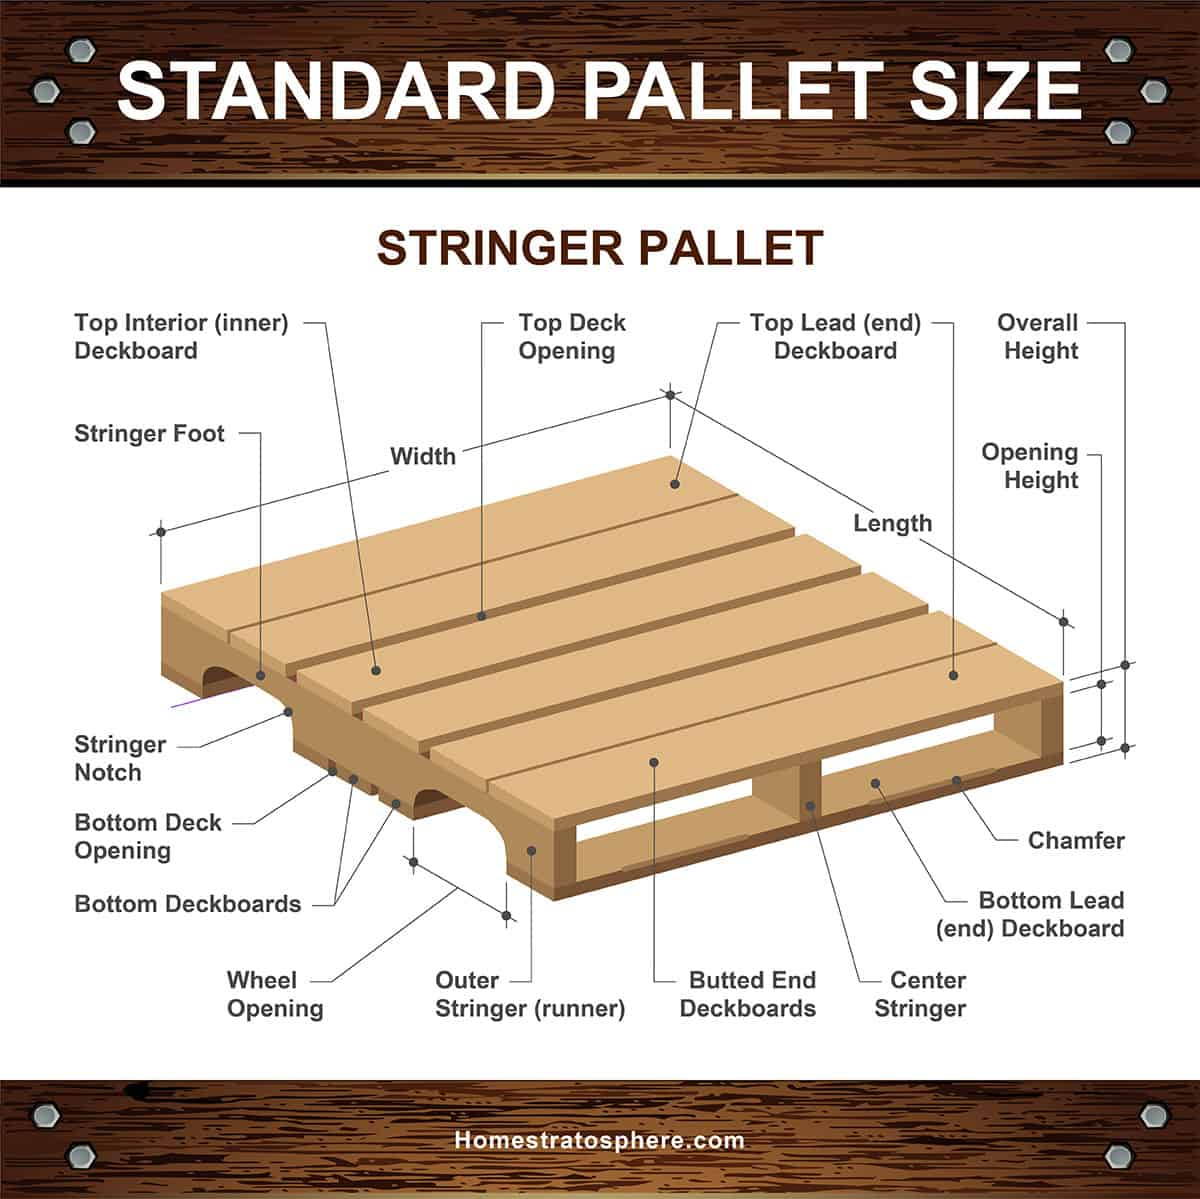 The different parts of a stringer pallet (diagram)